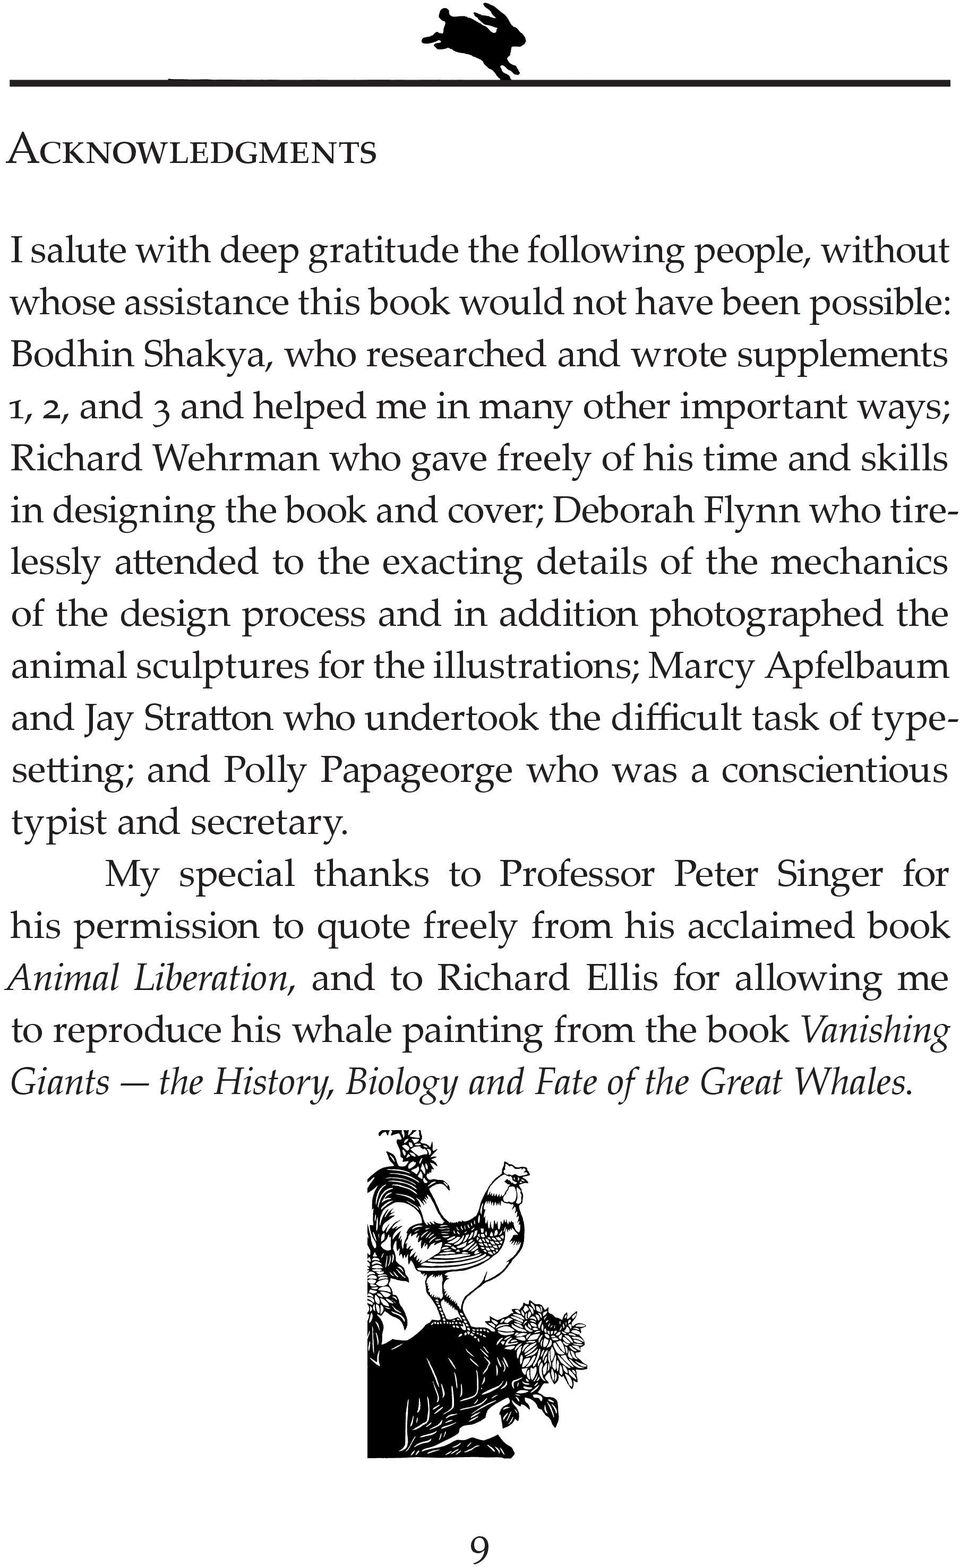 design process and in addition photographed the animal sculptures for the illustrations; Marcy Apfelbaum and Jay Stra on who undertook the difficult task of typese ing; and Polly Papageorge who was a